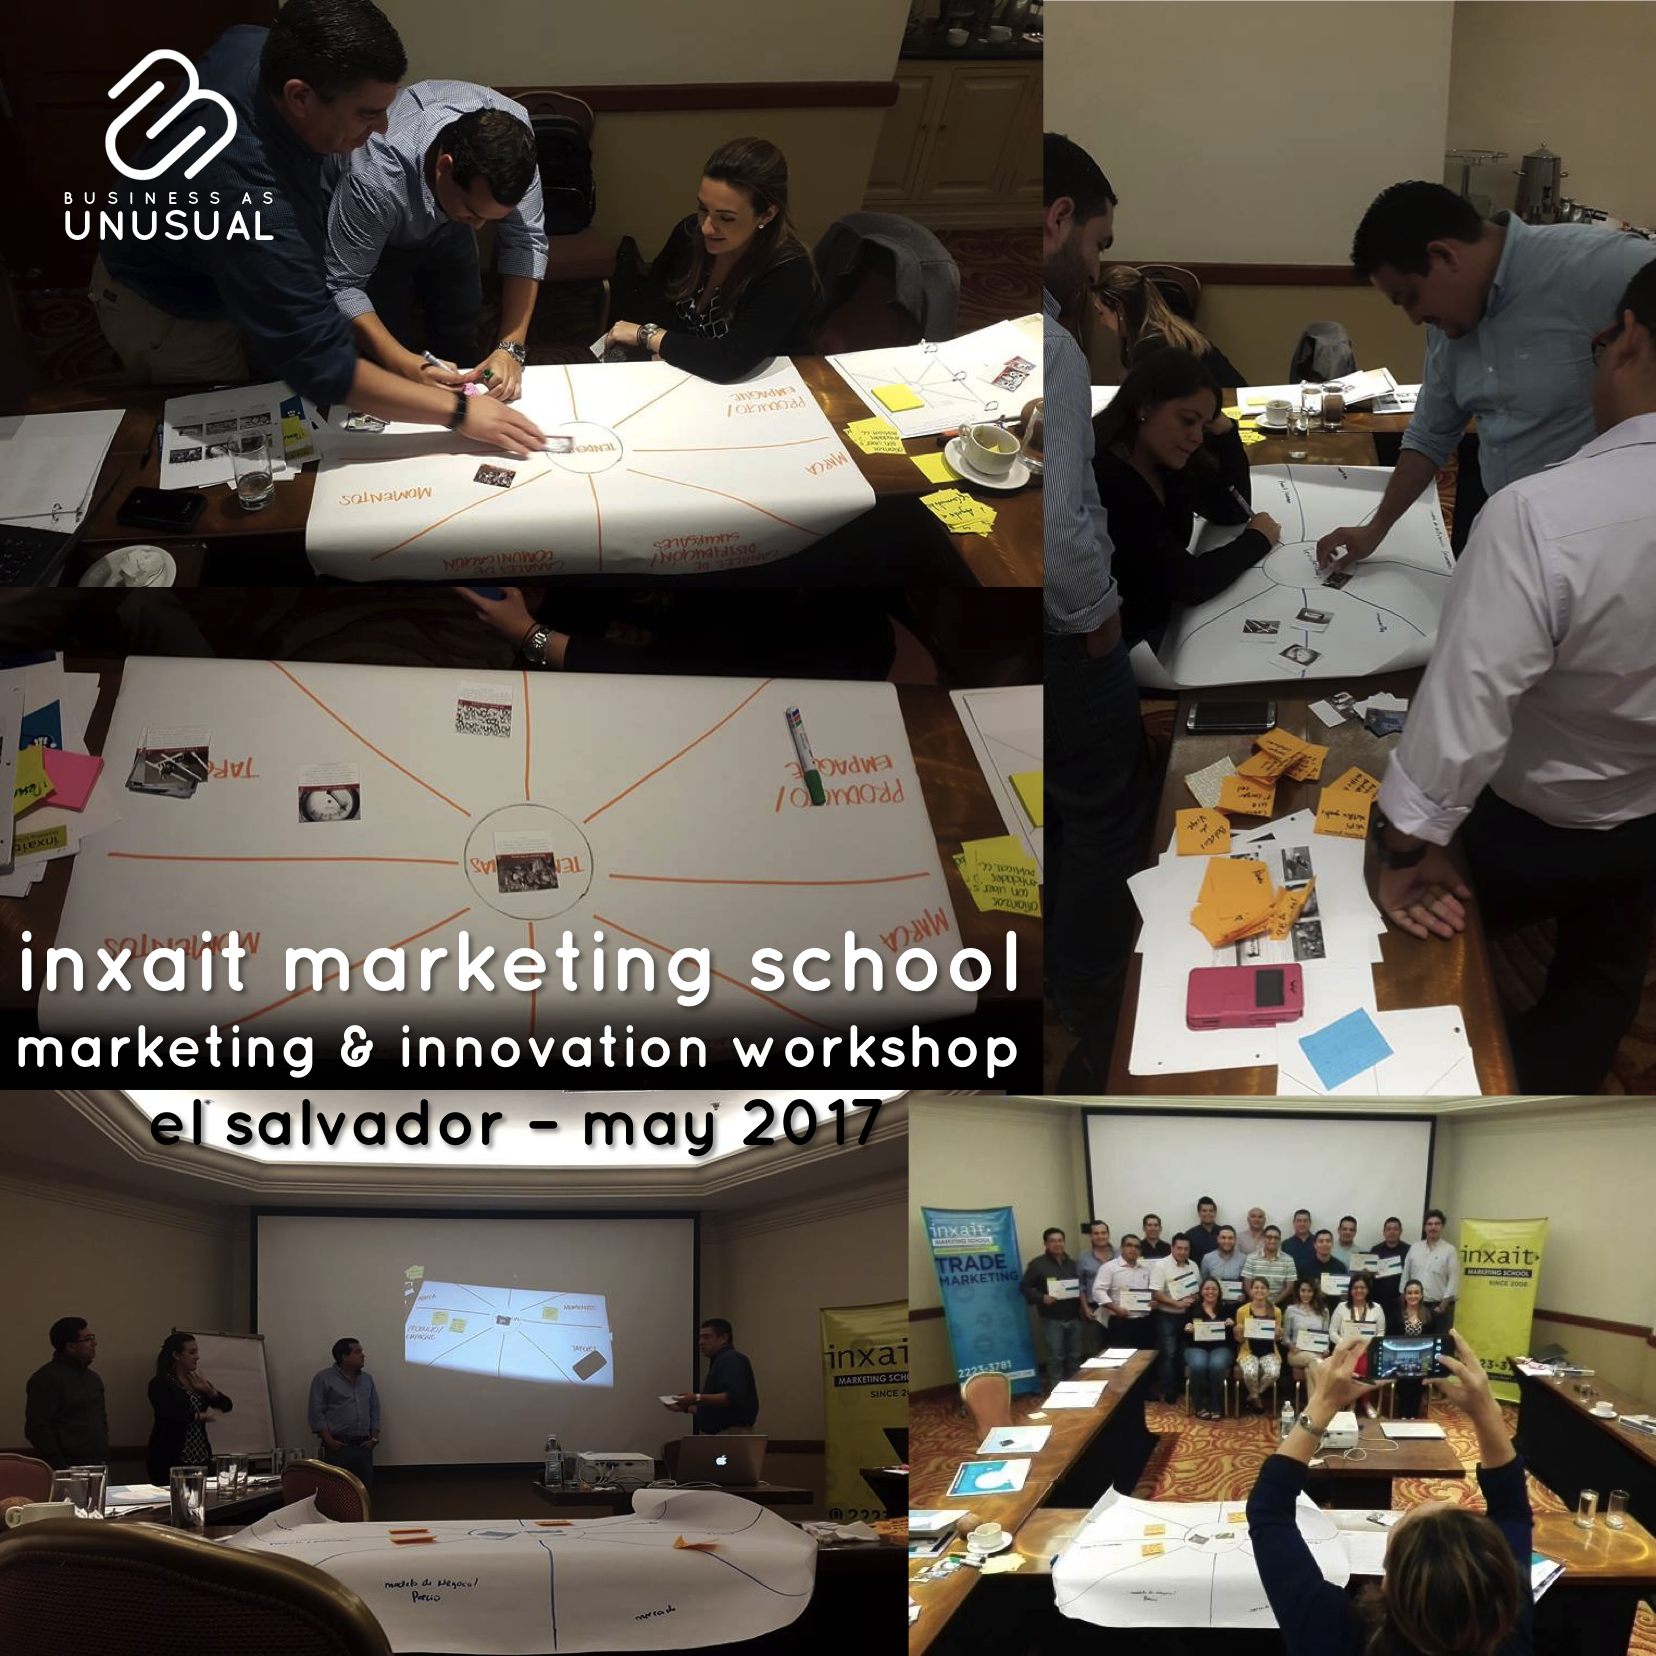 INXAIT Marketing School - Innovation and Marketing Workshop